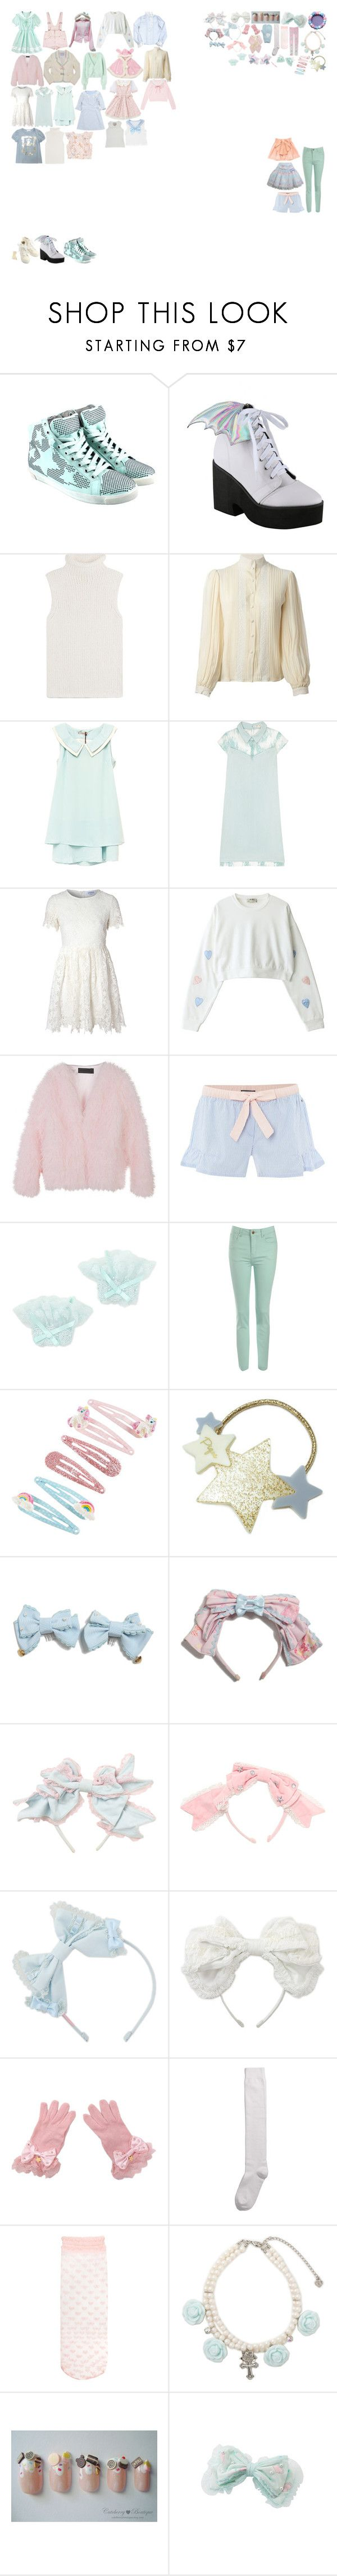 """Packing for Tour"" by kaelighofficial ❤ liked on Polyvore featuring Iron Fist, INC International Concepts, Theory, Jean-Louis Scherrer, Reiss, Glamorous, StyleNanda, Tommy Hilfiger, Jane Norman and Accessorize"